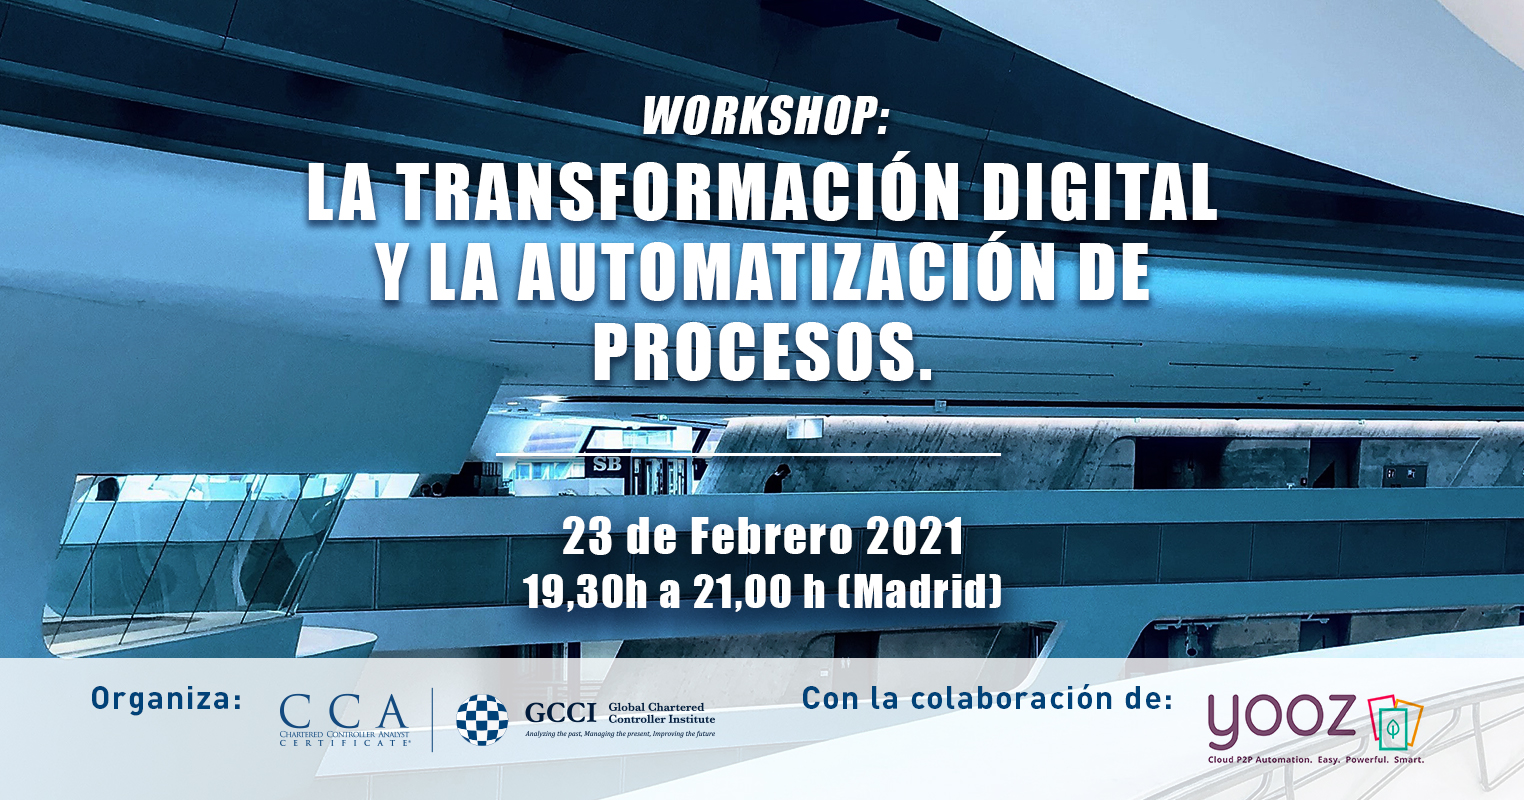 WORKSHOP: LA TRANSFORMACIÓN DIGITAL Y LA AUTOMATIZACIÓN DE PROCESOS.